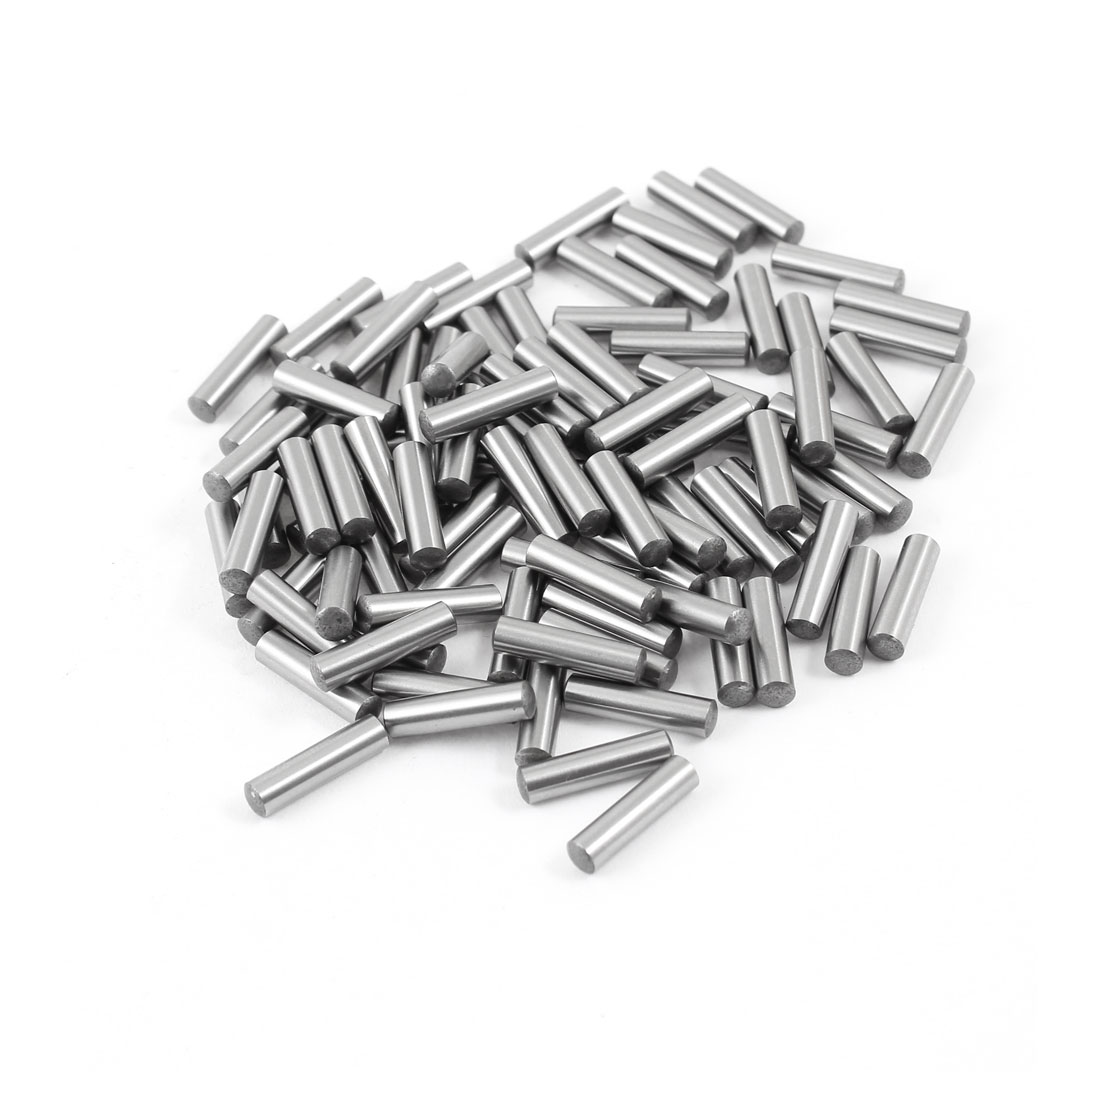 100 Pcs Stainless Steel 3.95mm x 15.8mm Parallel Dowel Pins Fasten Elements Silver Tone